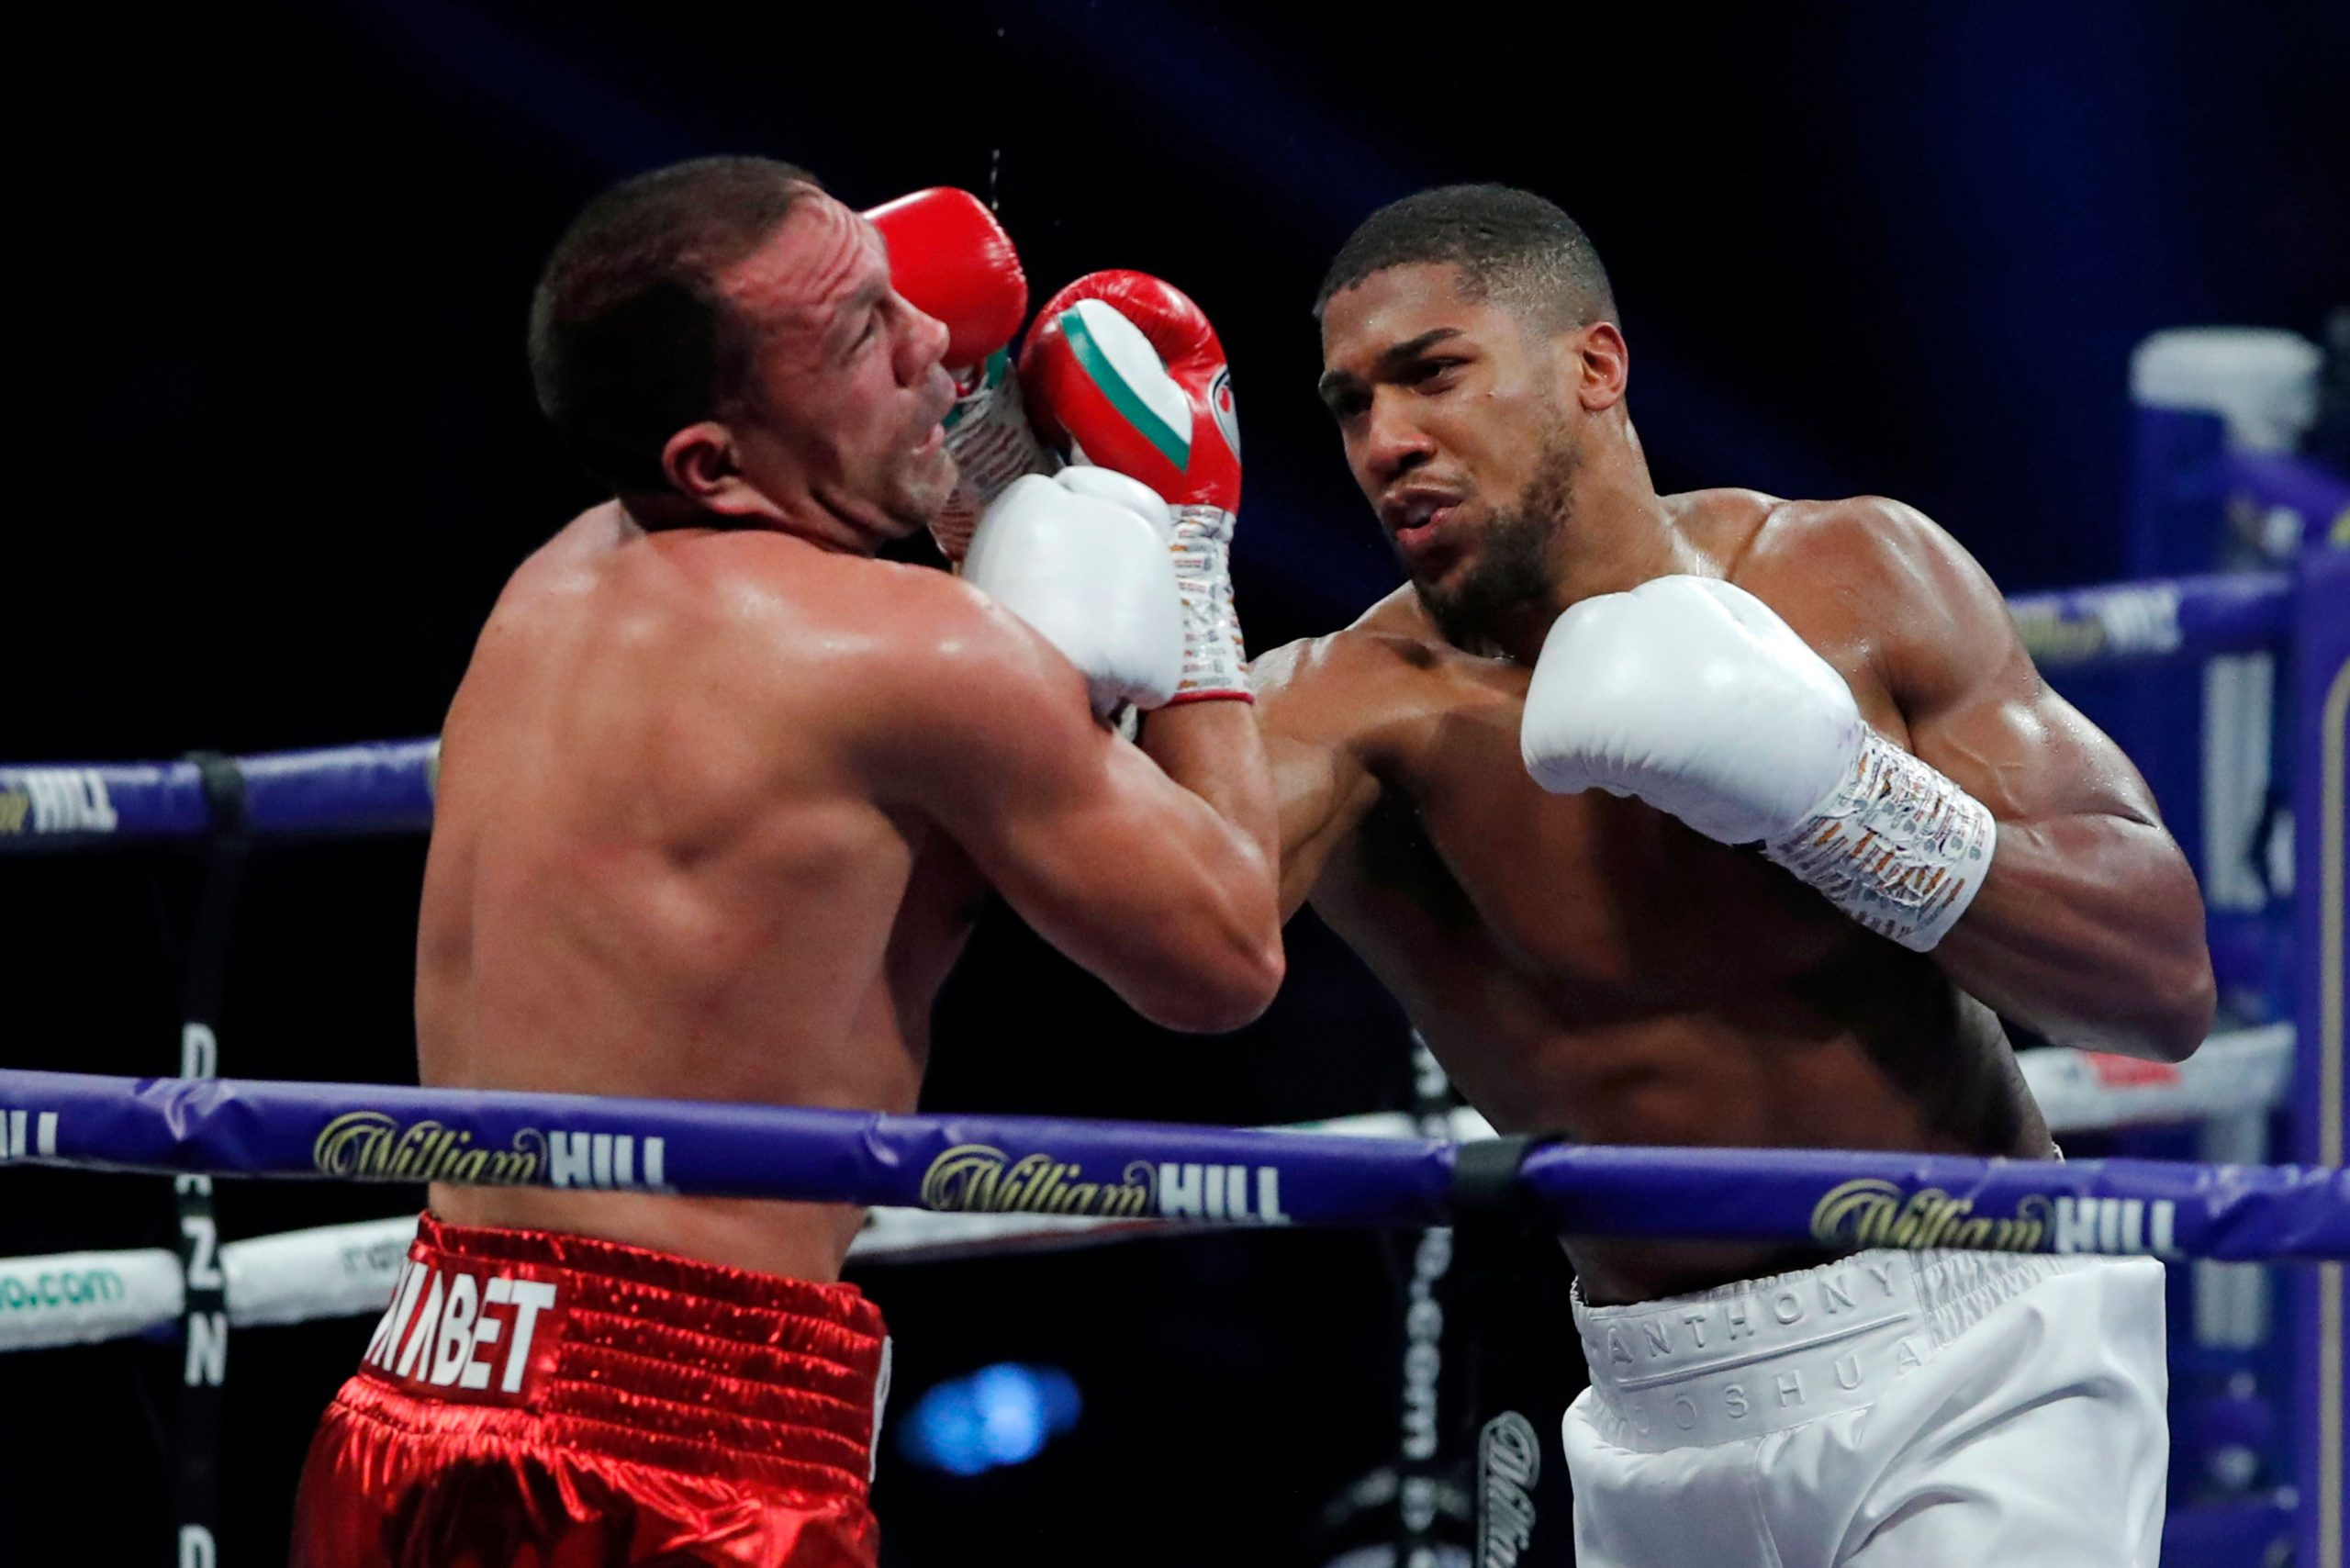 Update: Joshua Retains World Titles After Knockout Win Against Pulev